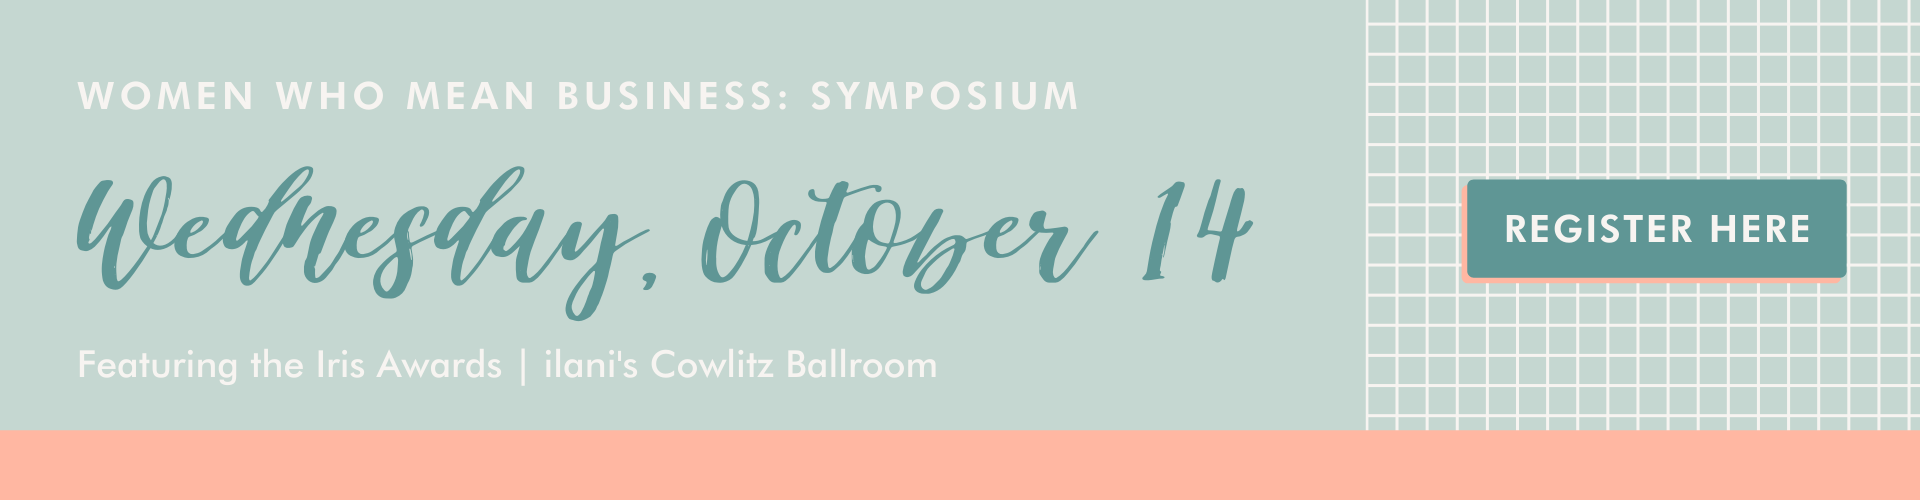 WWMB-Symposium-Title-and-Register-Button.png